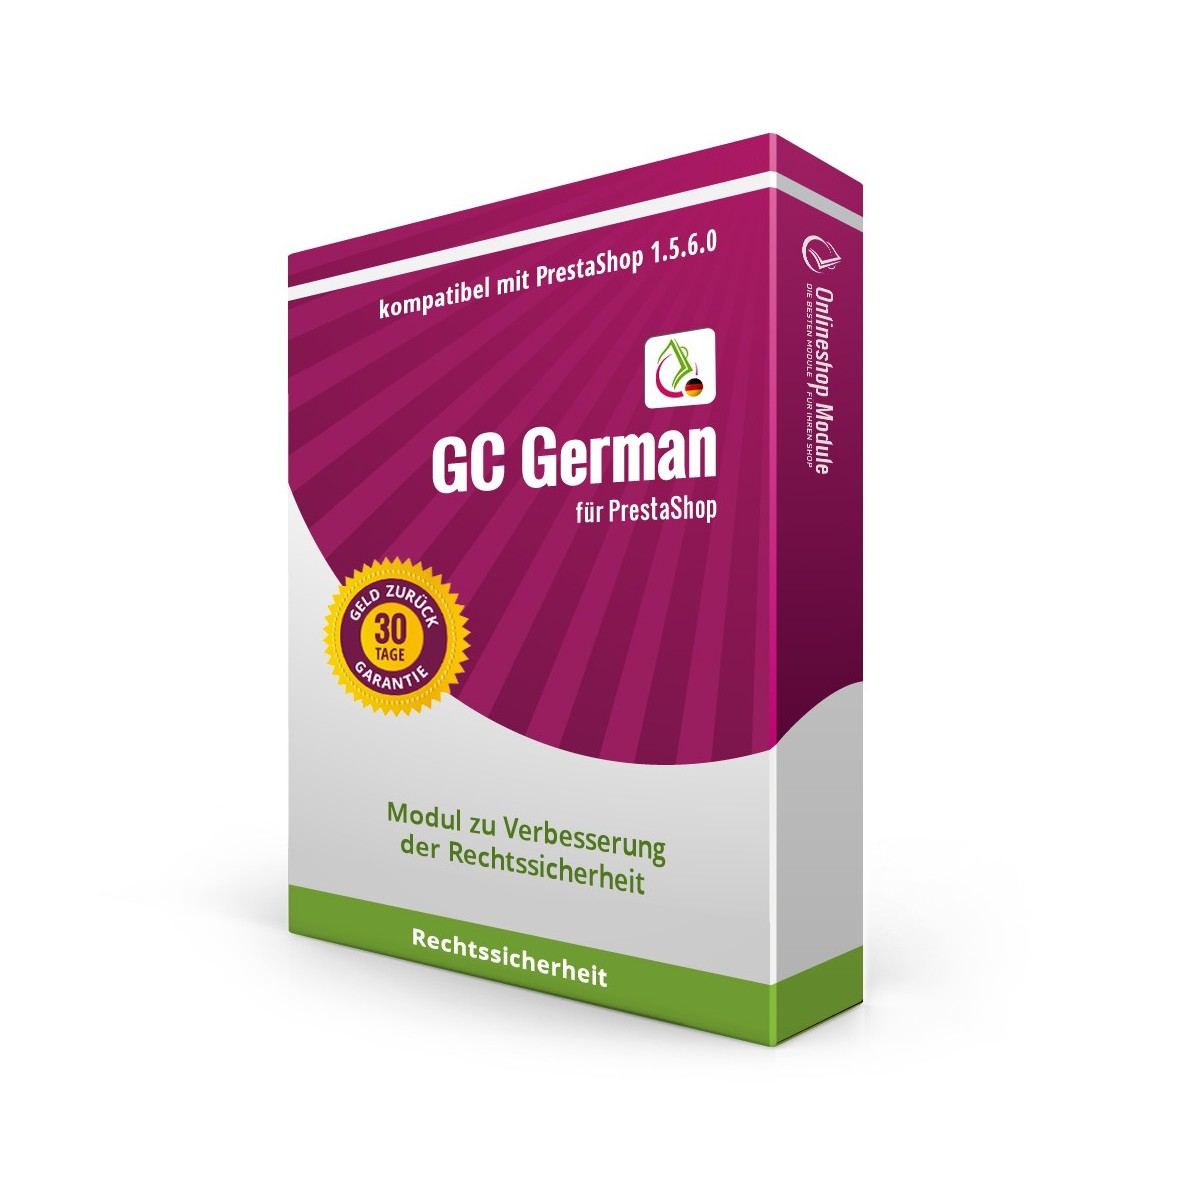 GC German für PrestaShop 1.5.6.0